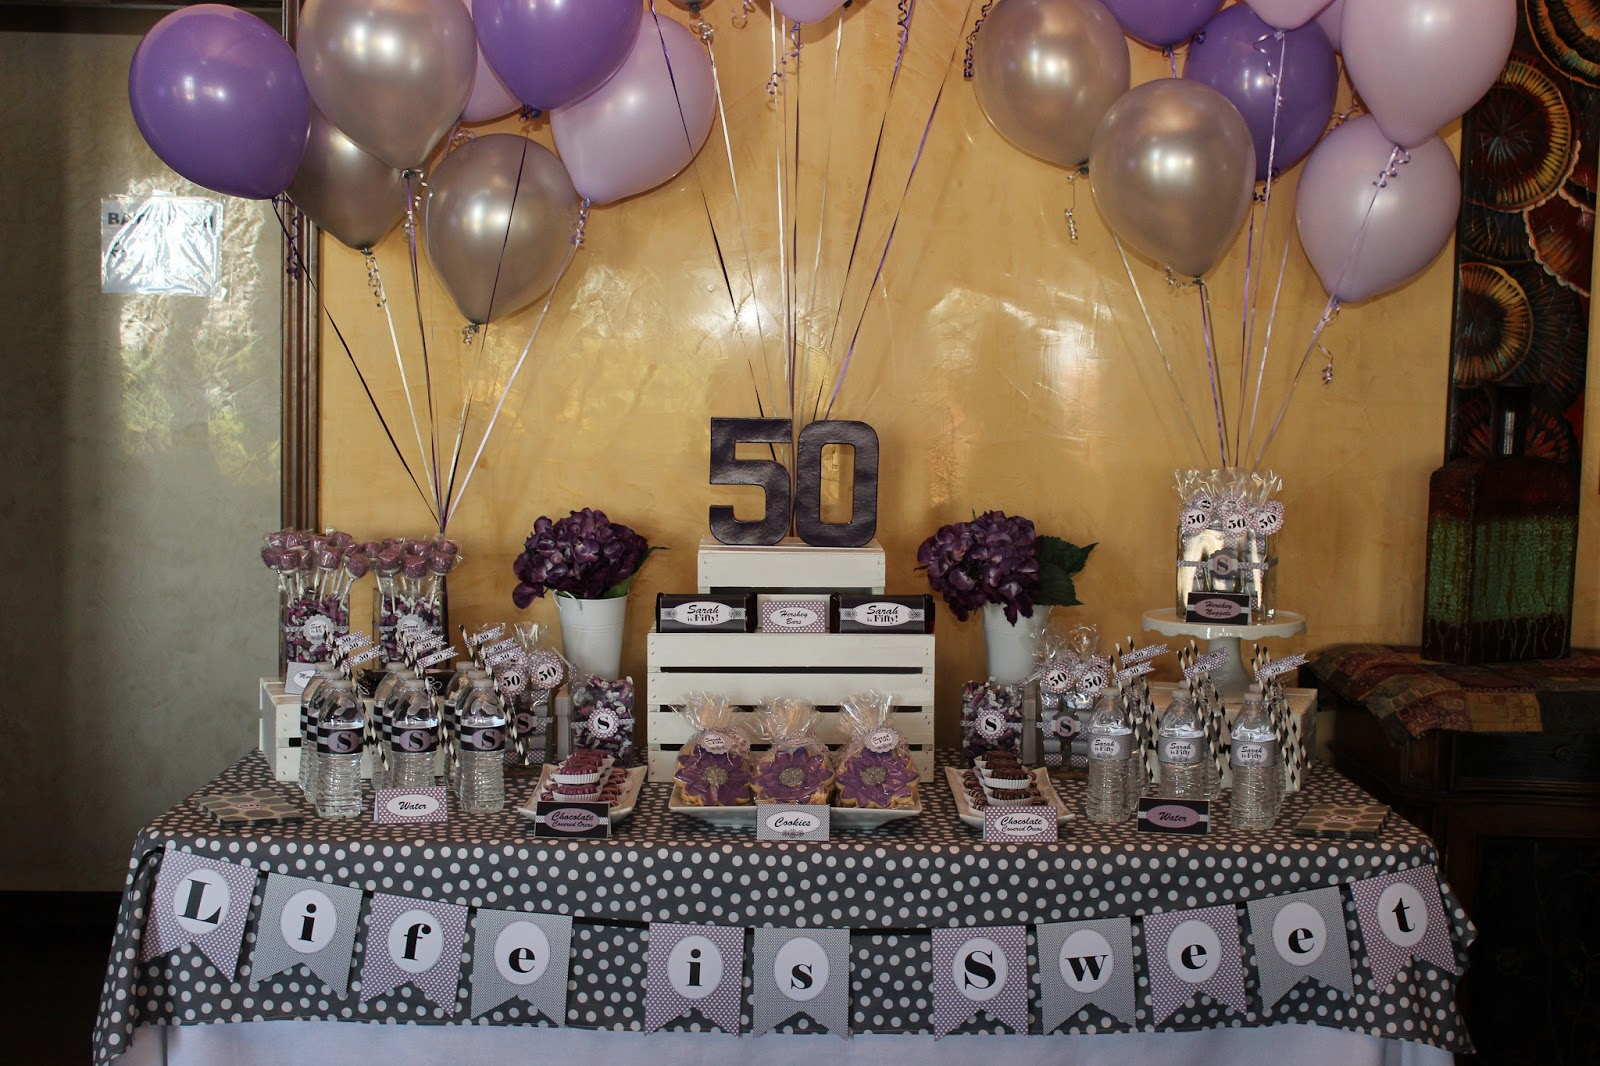 ... Sugar Bee Bungalow: {Party Bee} Sarahs 50th Birthday Dessert Table